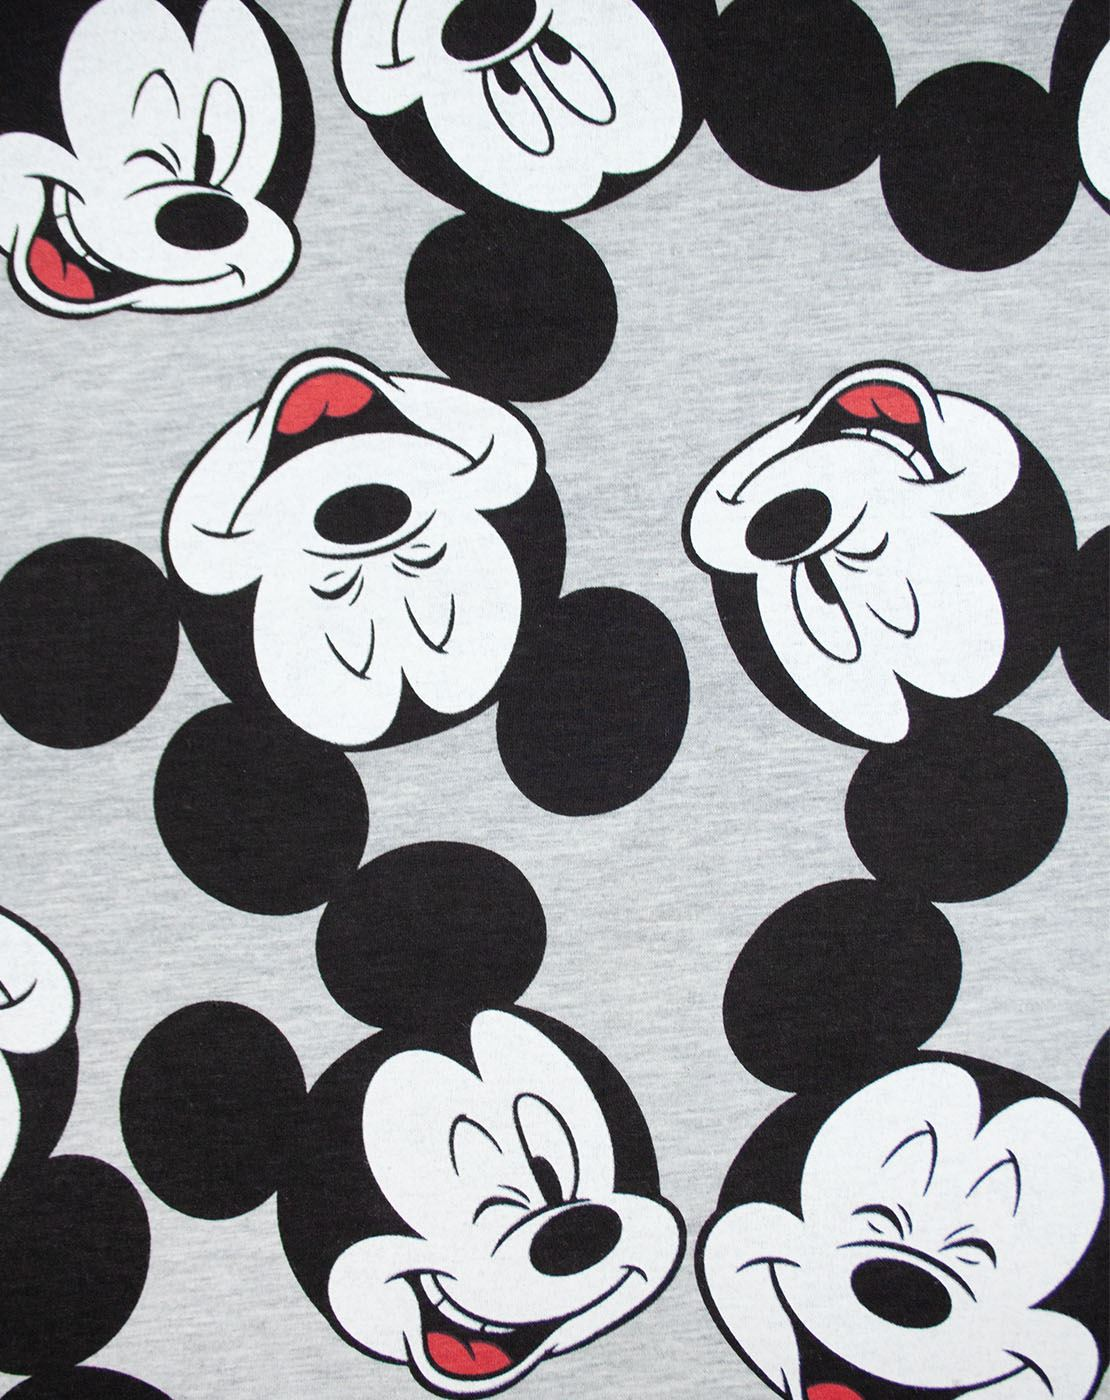 Disney-Mickey-Mouse-Character-All-Over-Women-039-s-Ladies-Boyfriend-Fit-T-Shirt thumbnail 6